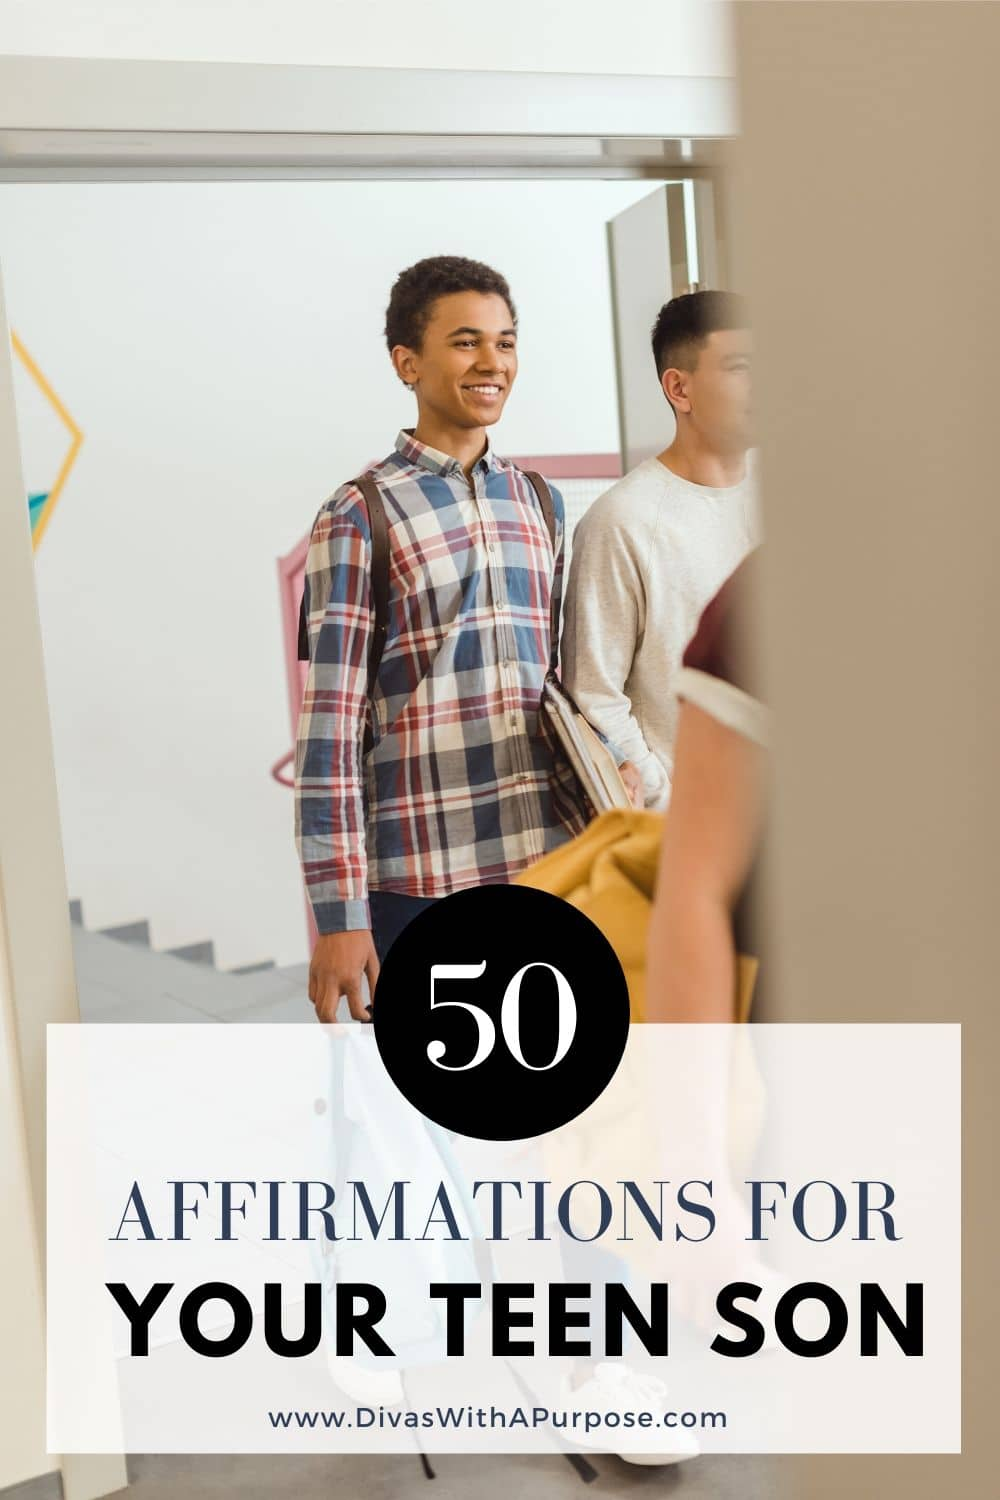 Here are 50 affirmations for our teenage sons' self-esteem. Often when we think of affirmations we focus on our daughters and ourselves, but they can make a big impact in the lives of everyone. #affirmations #teenagers #raisingsons